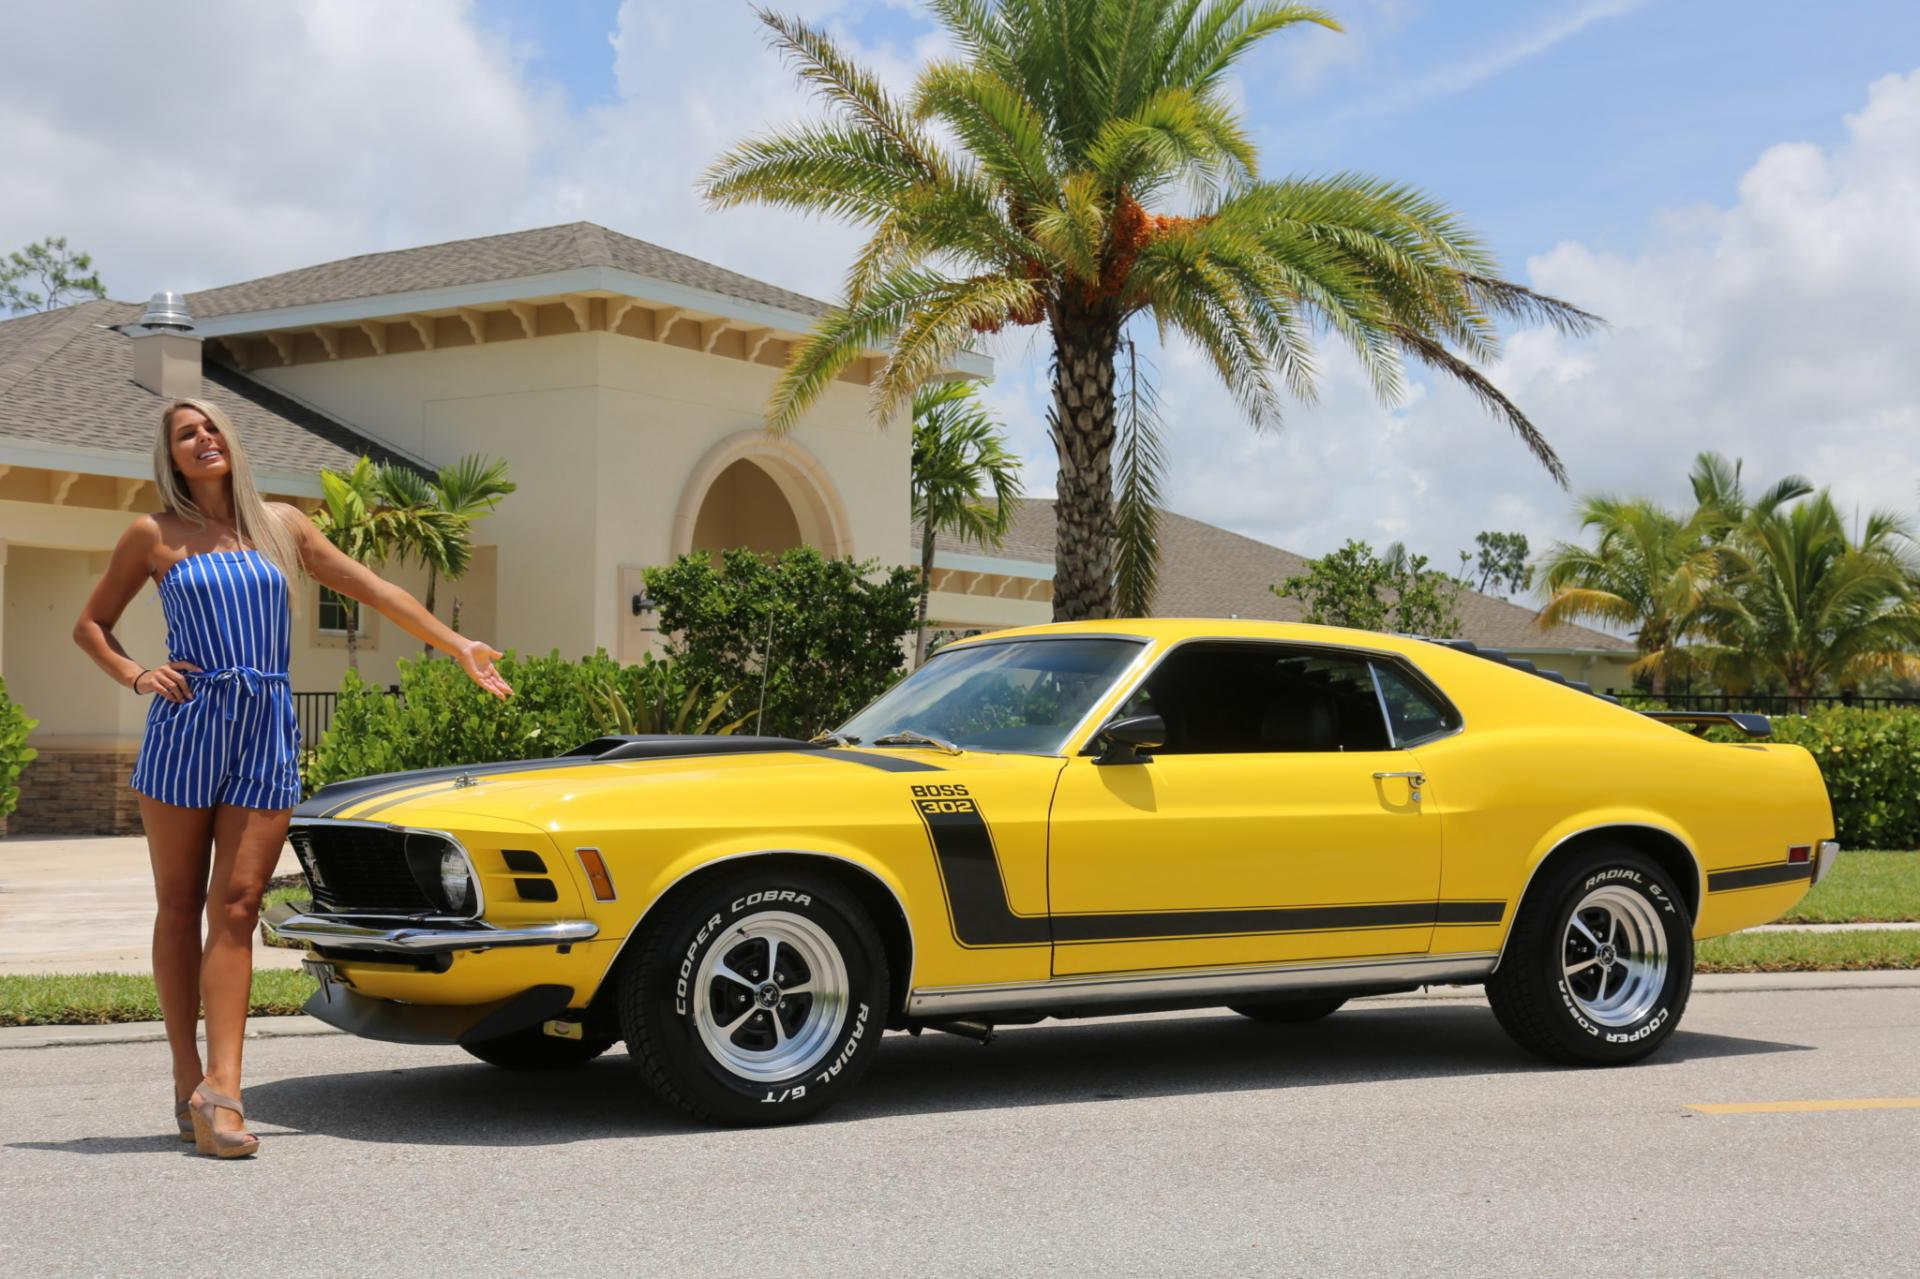 Used 1970 Ford Mustang 302 Boss for sale Sold at Muscle Cars for Sale Inc. in Fort Myers FL 33912 3